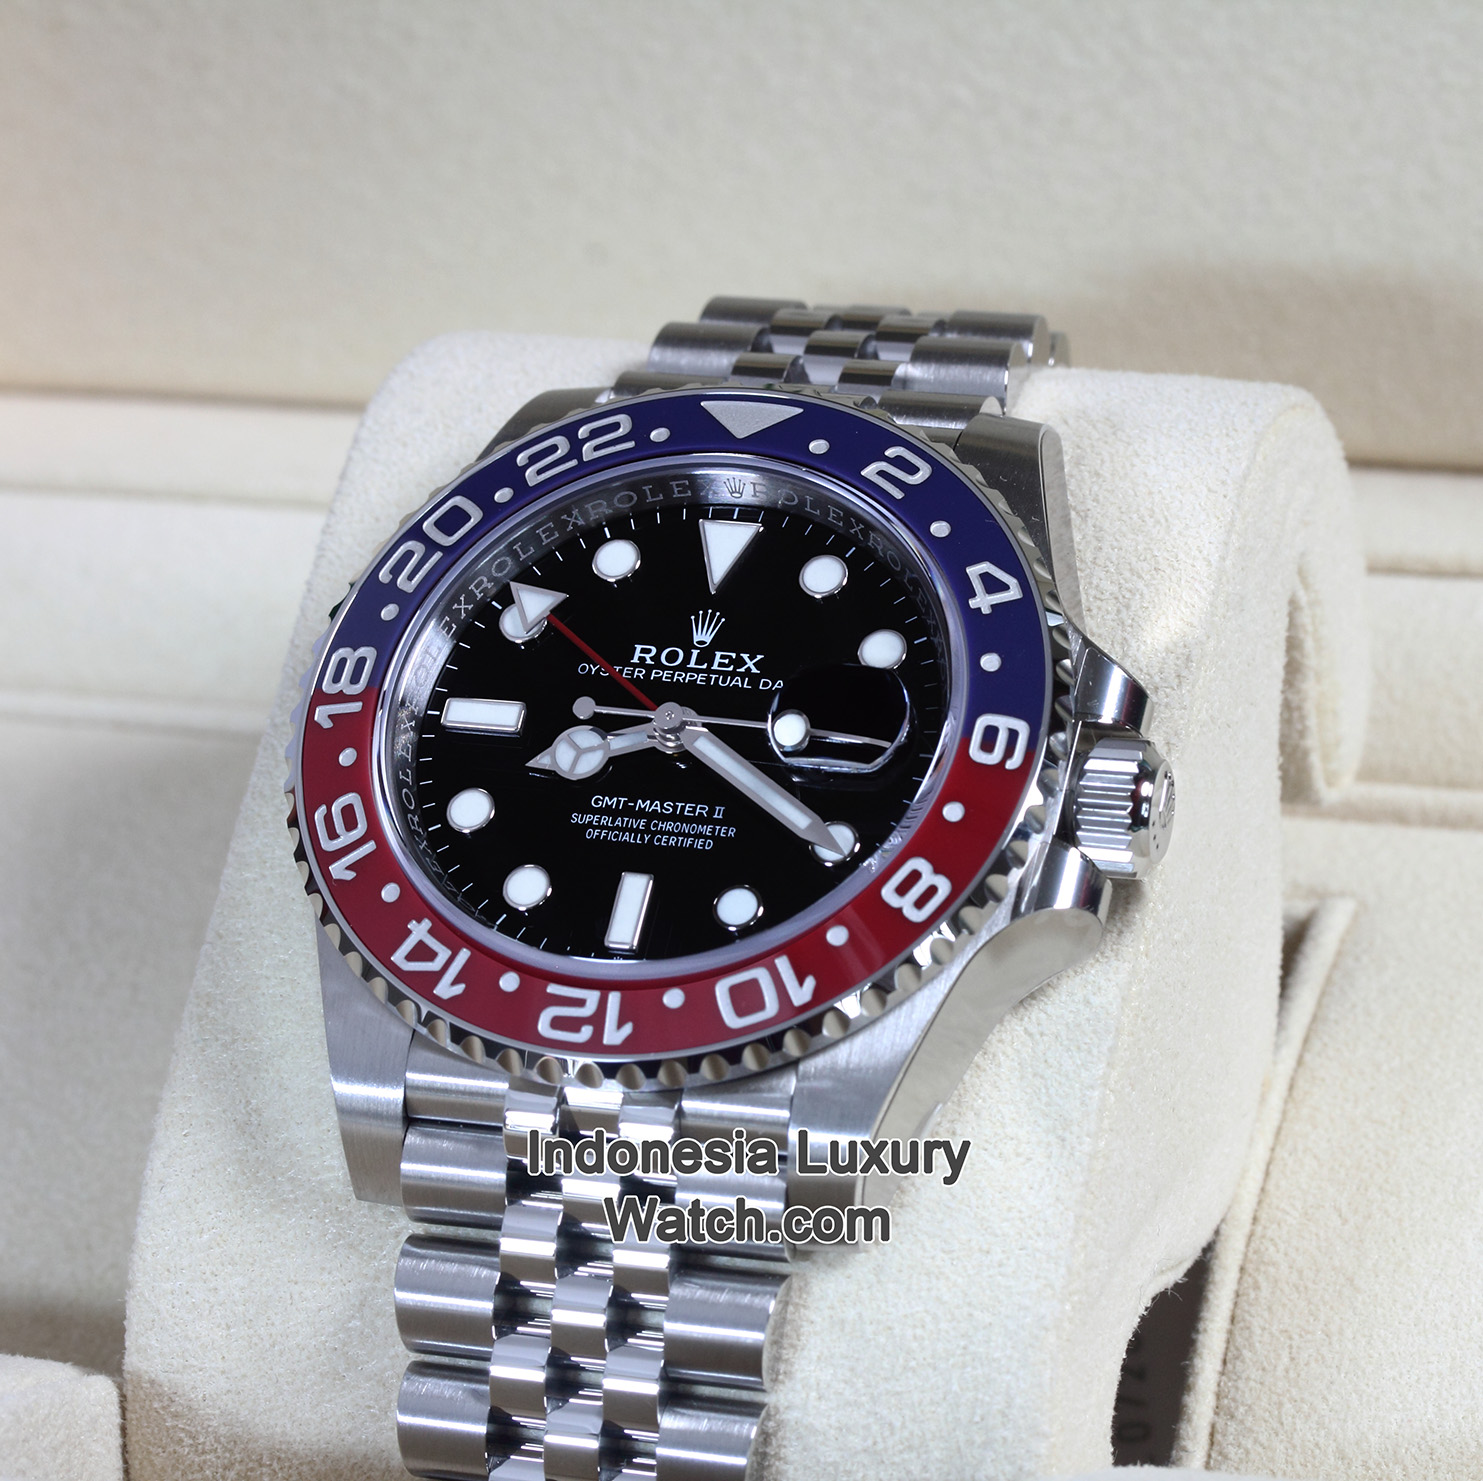 Rolex Pepsi GMT Master II Brand New In Box